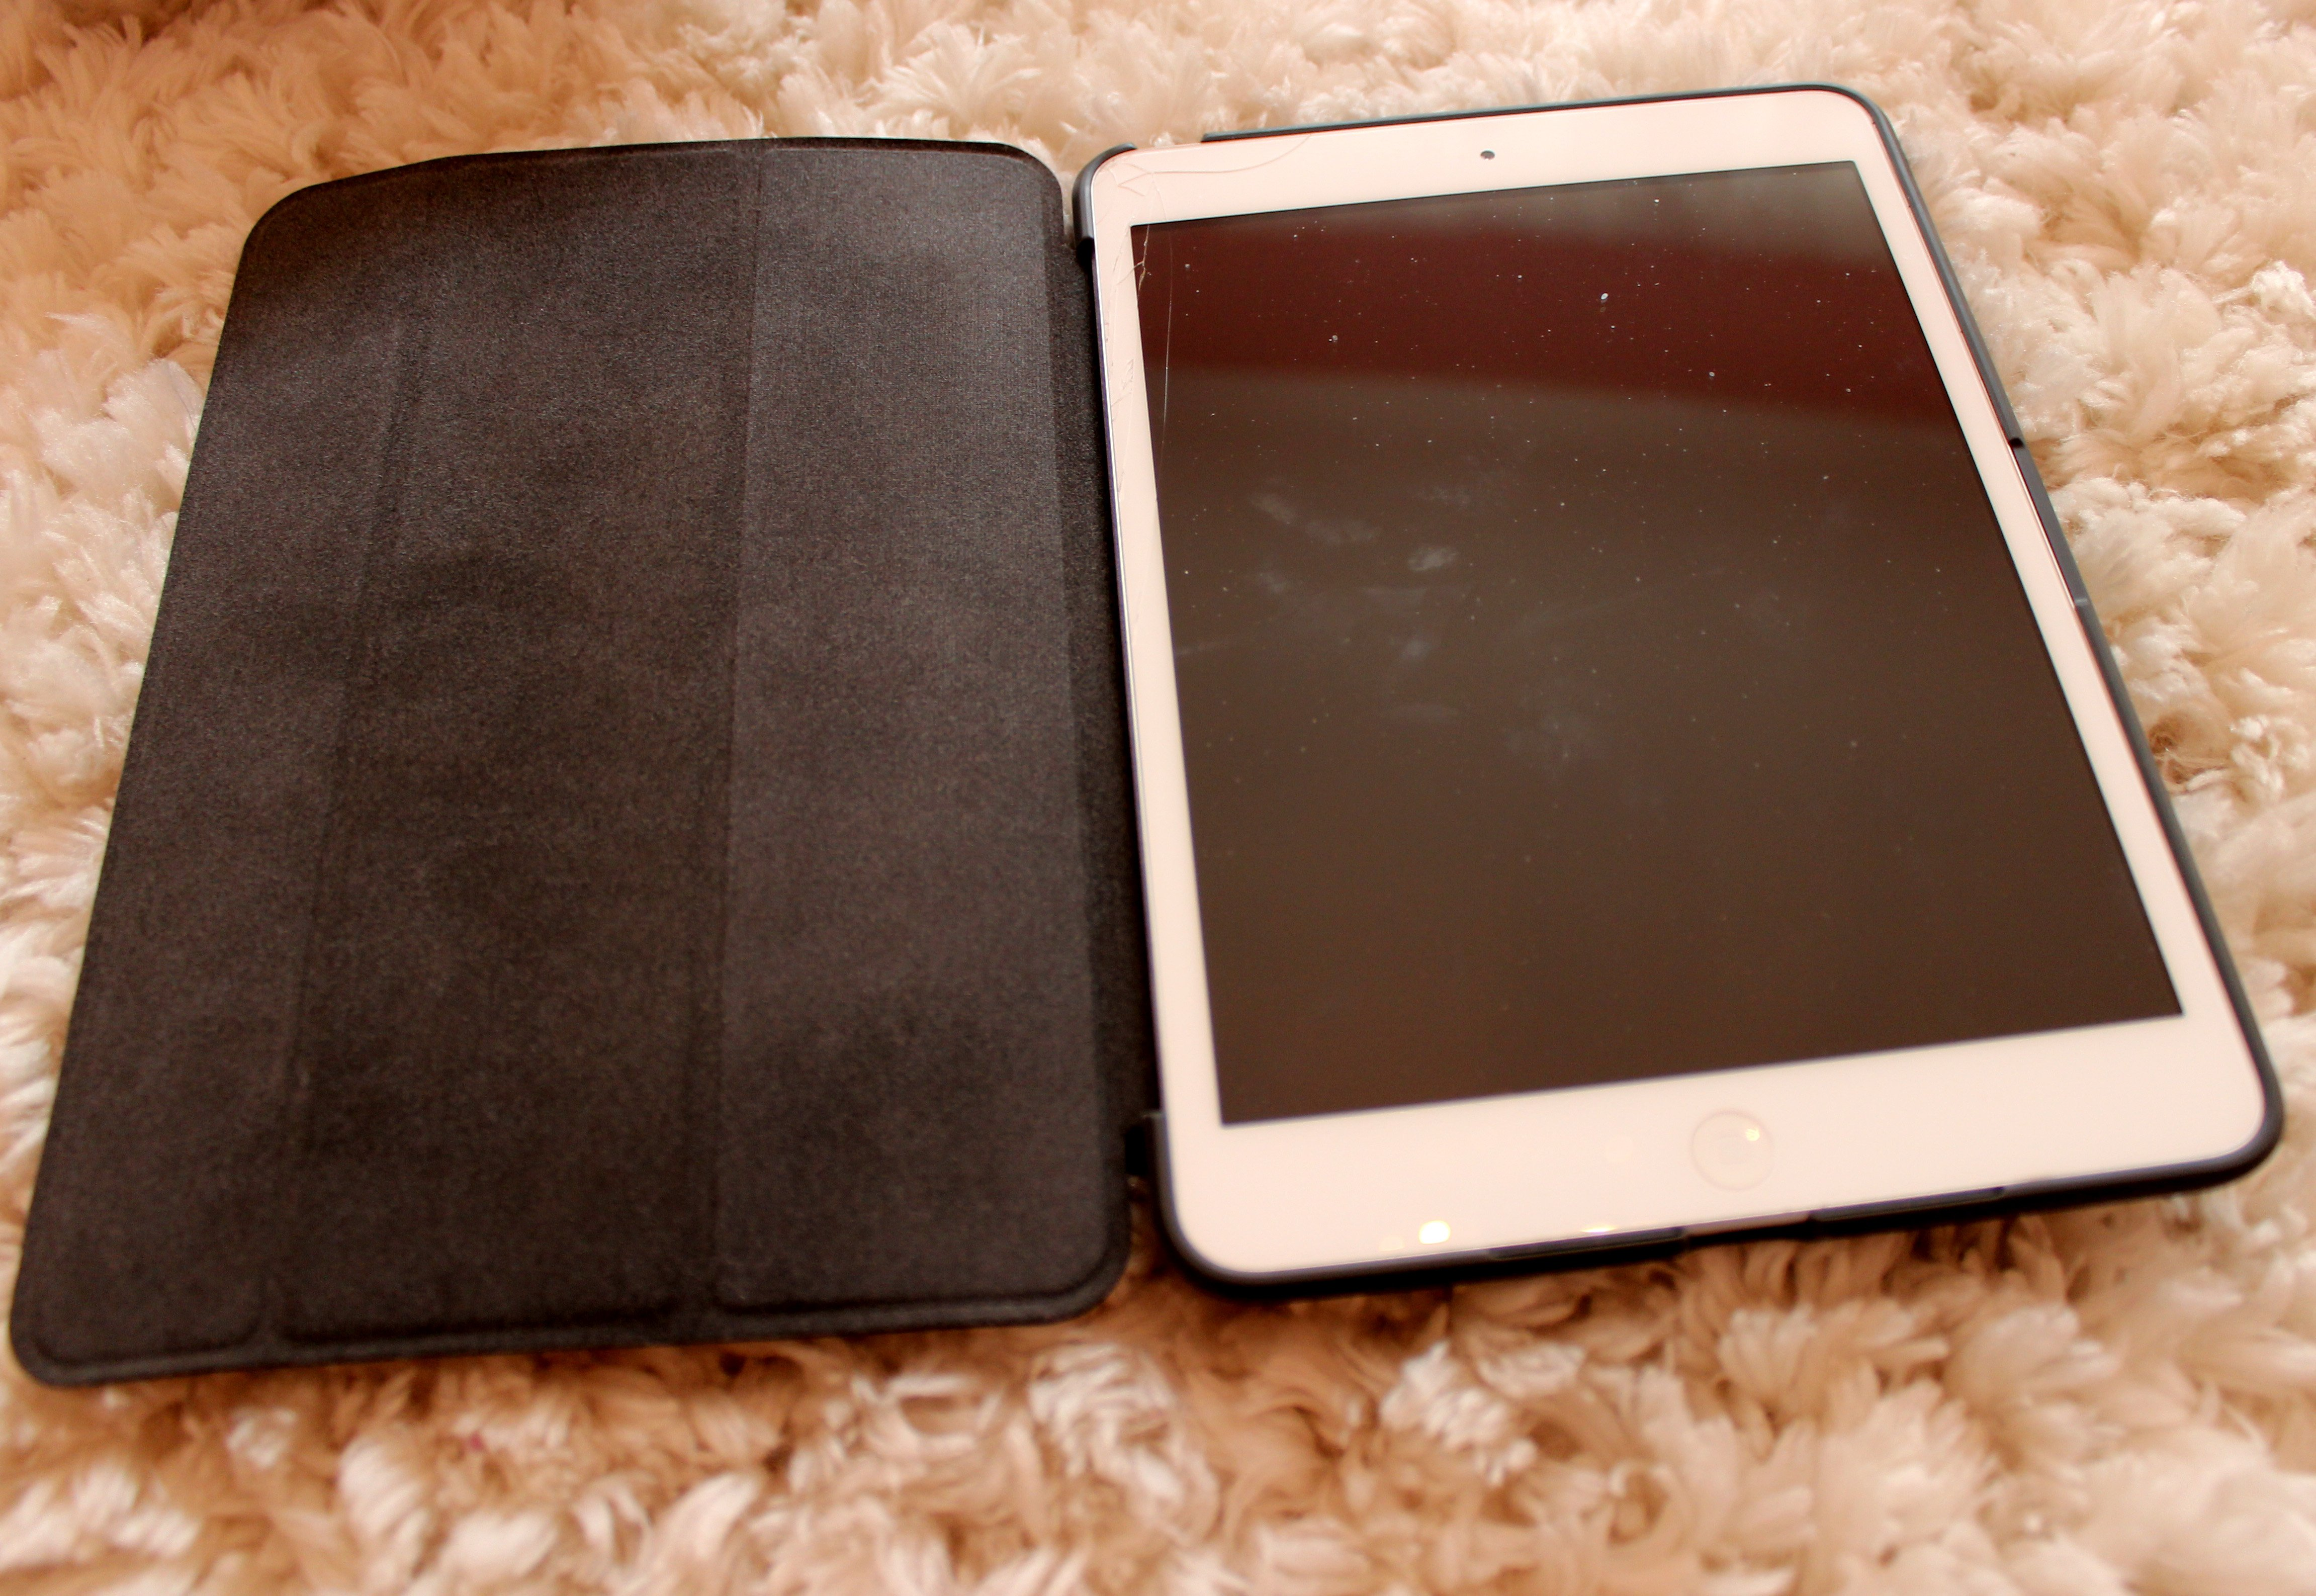 You can open and use the ShowFolio, like basic tablet cases.